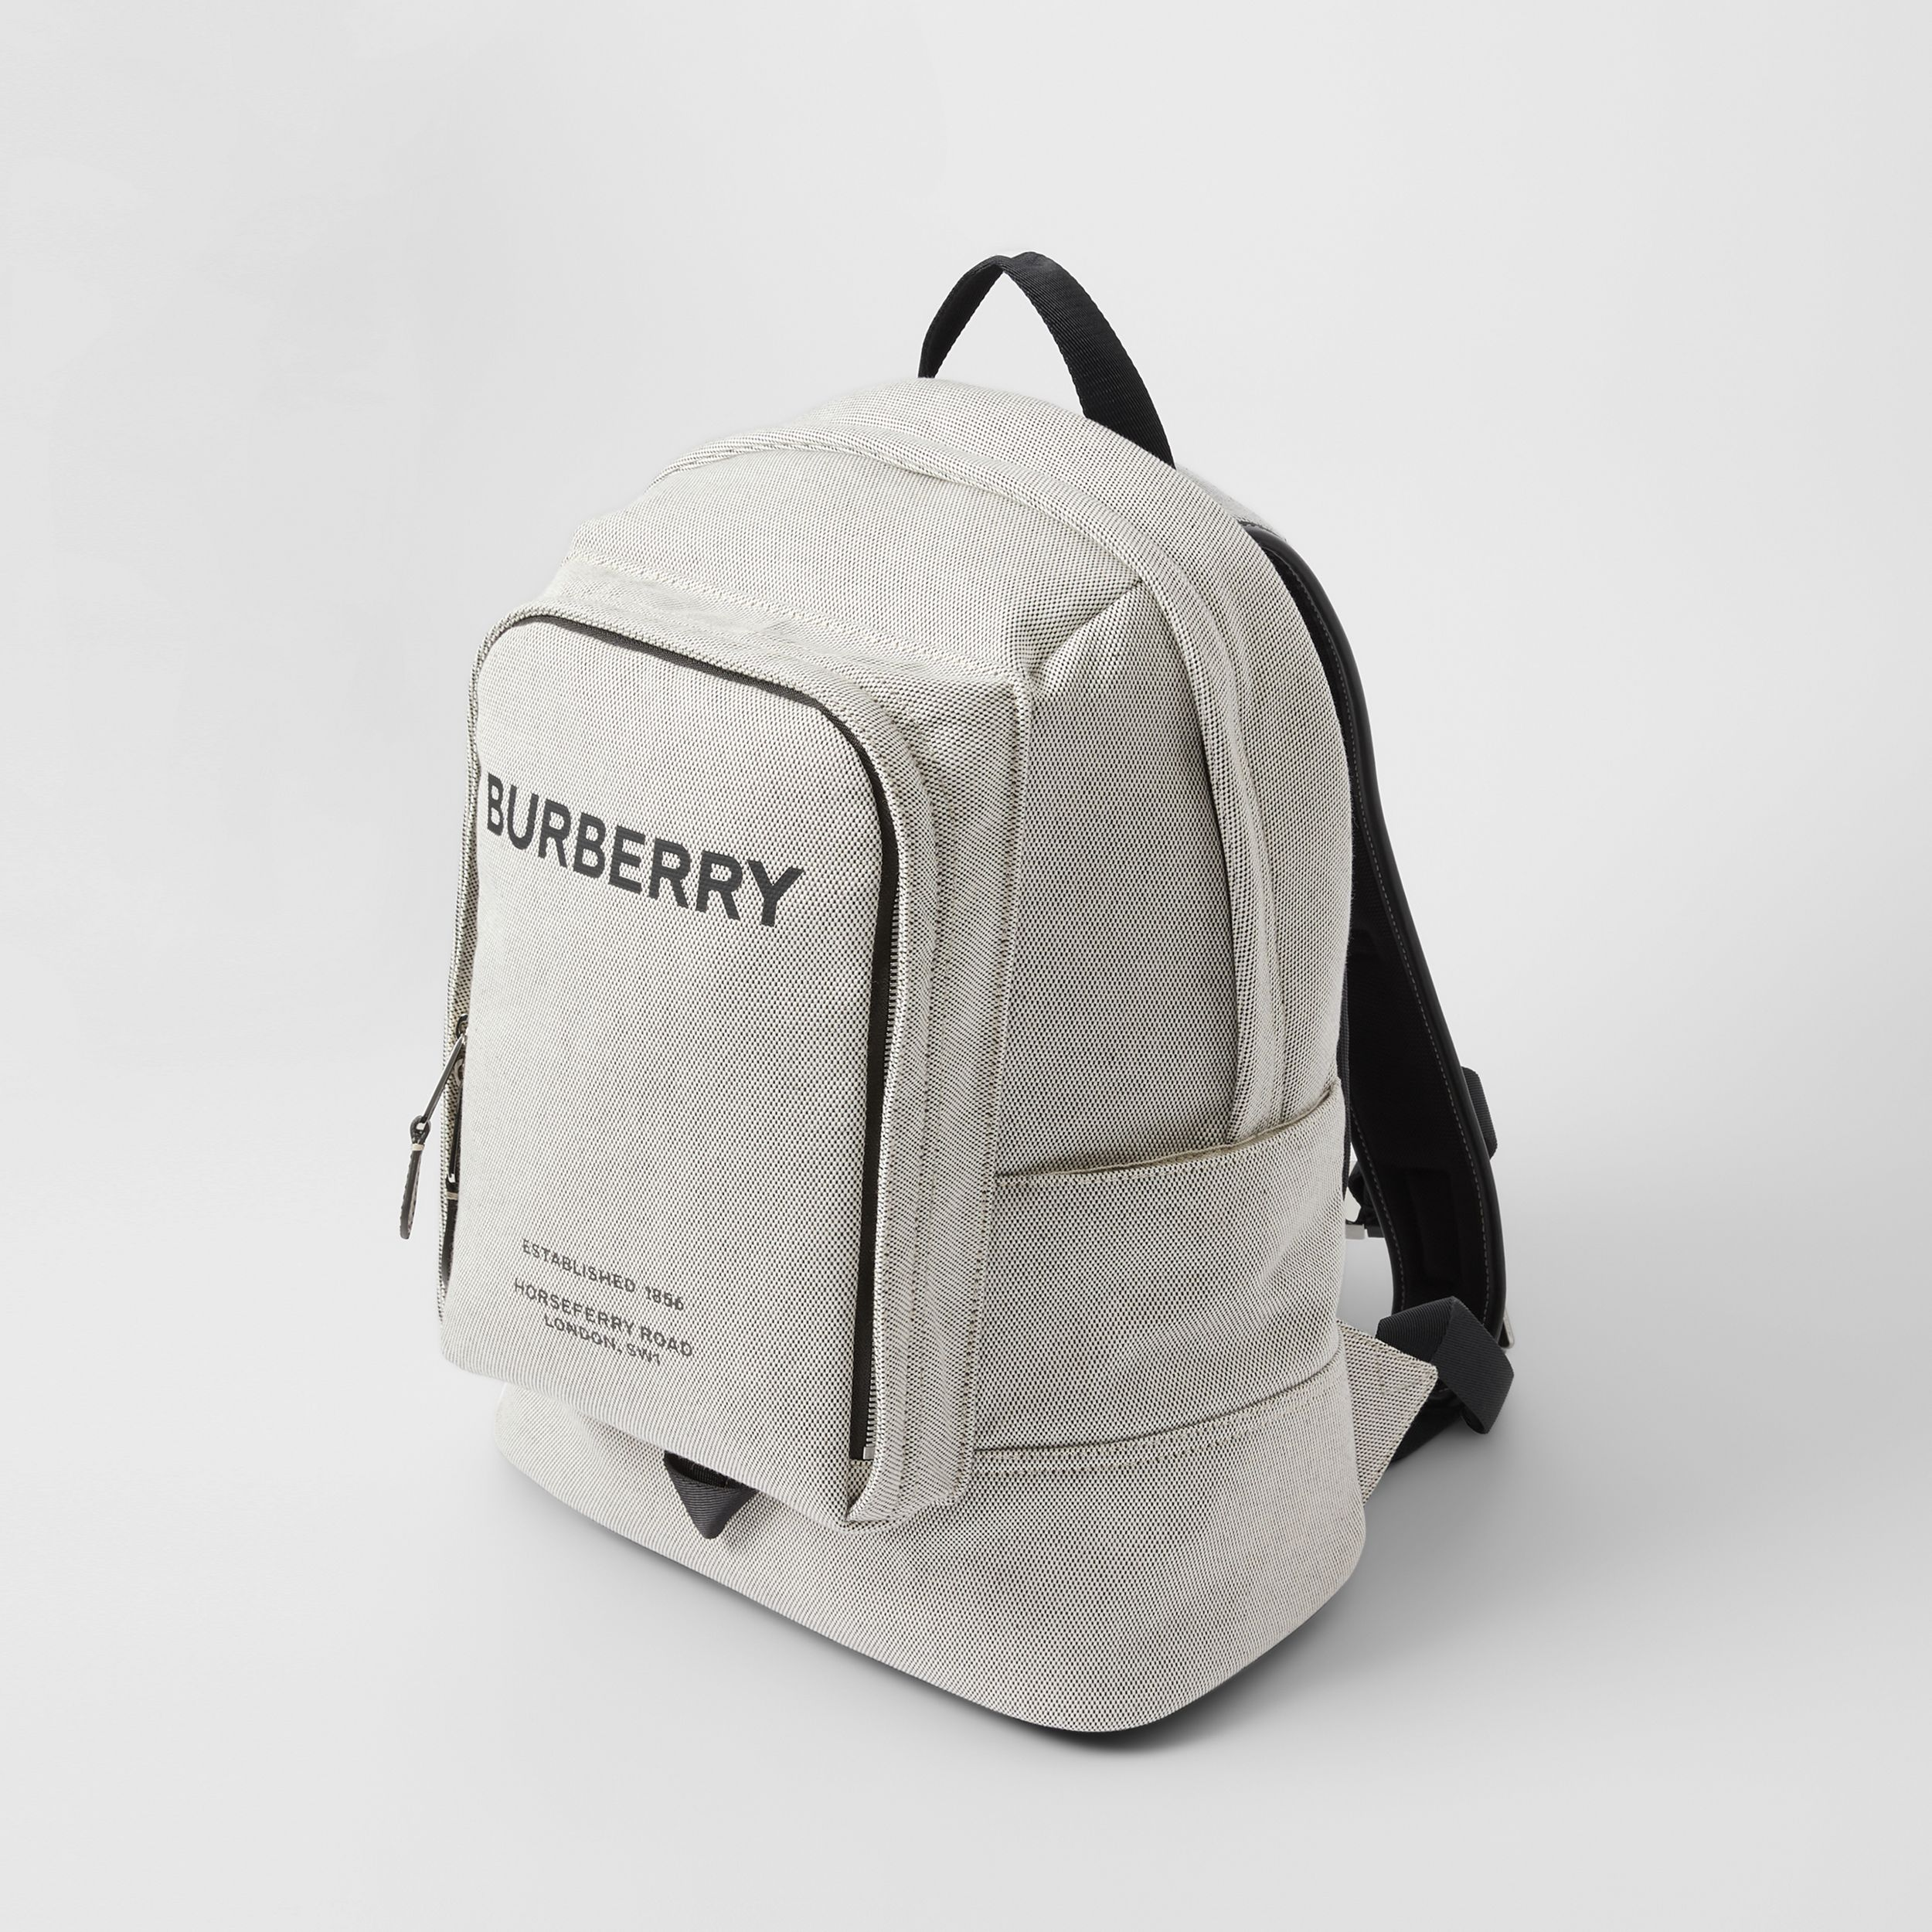 Large Logo Print Cotton Canvas Backpack in Black - Men | Burberry - 4